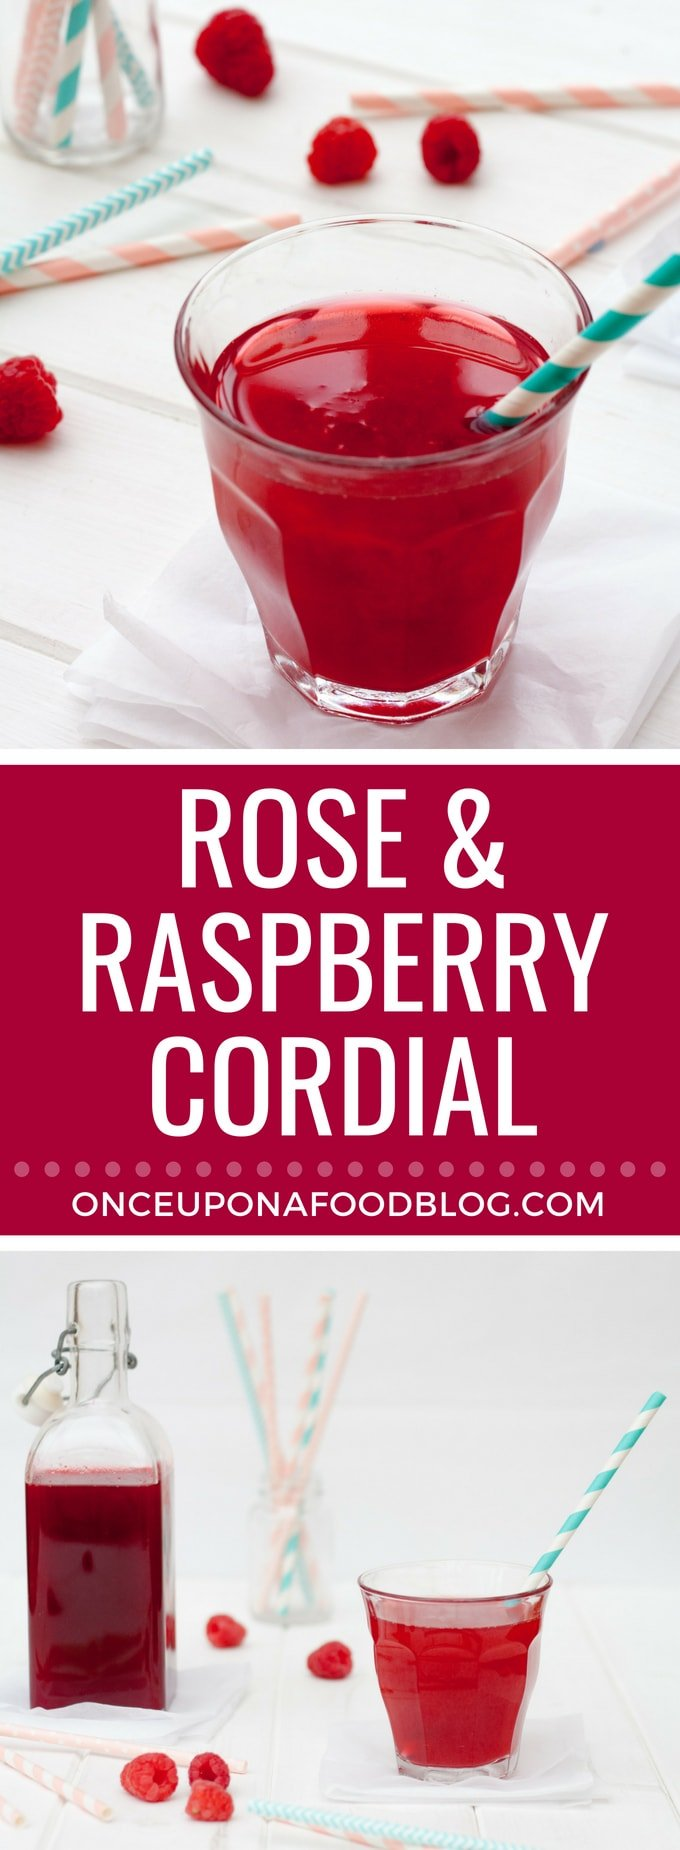 Rose and Raspberry Cordial. A gorgeous summer drink. Dilute with flat or sparkling water or prosecco. Perfect to cool you down on a warm summer evening. #drinks #summer #raspberries #cordial #summerfun #summerparty #cocktails #summercocktails #onceuponafoodblog